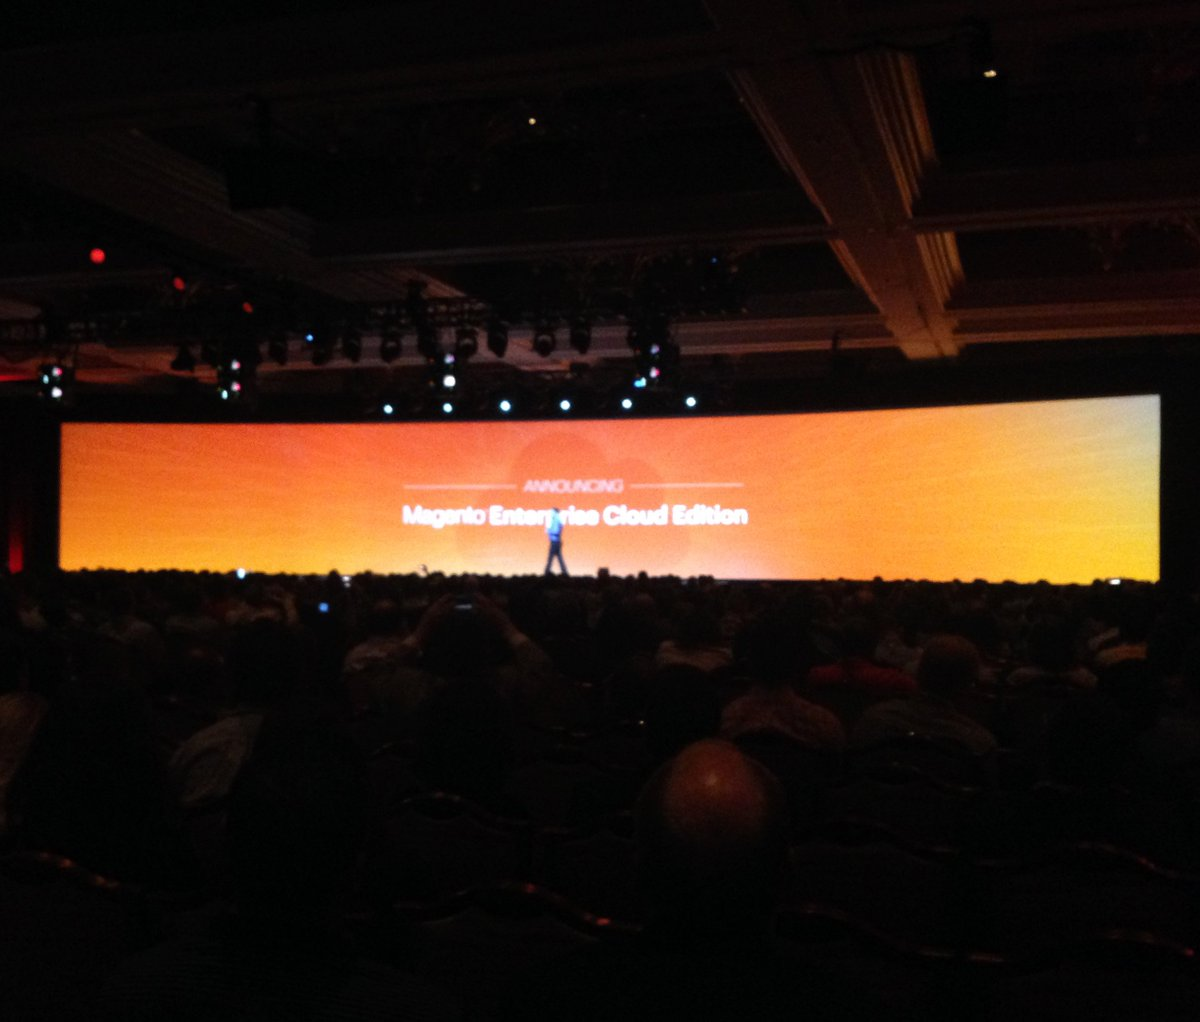 HumanElementA2: Magento announces Enterprise Cloud Edition at first general session. #MagentoImagine https://t.co/lDmw8GpOVi